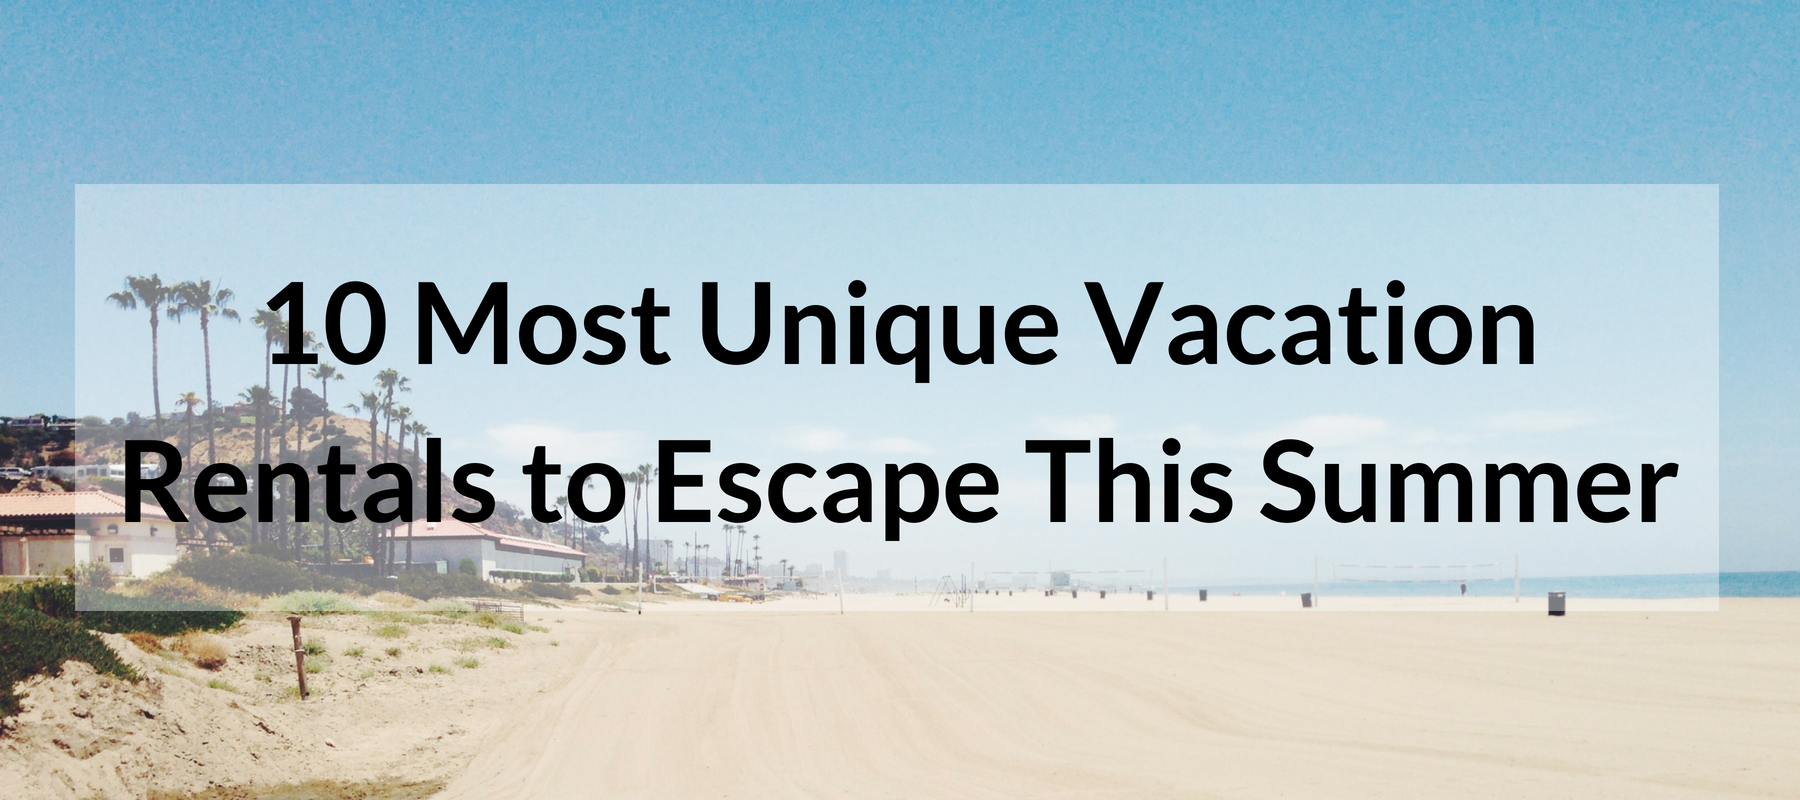 10 Most Unique Vacation Rentals to Escape This Summer